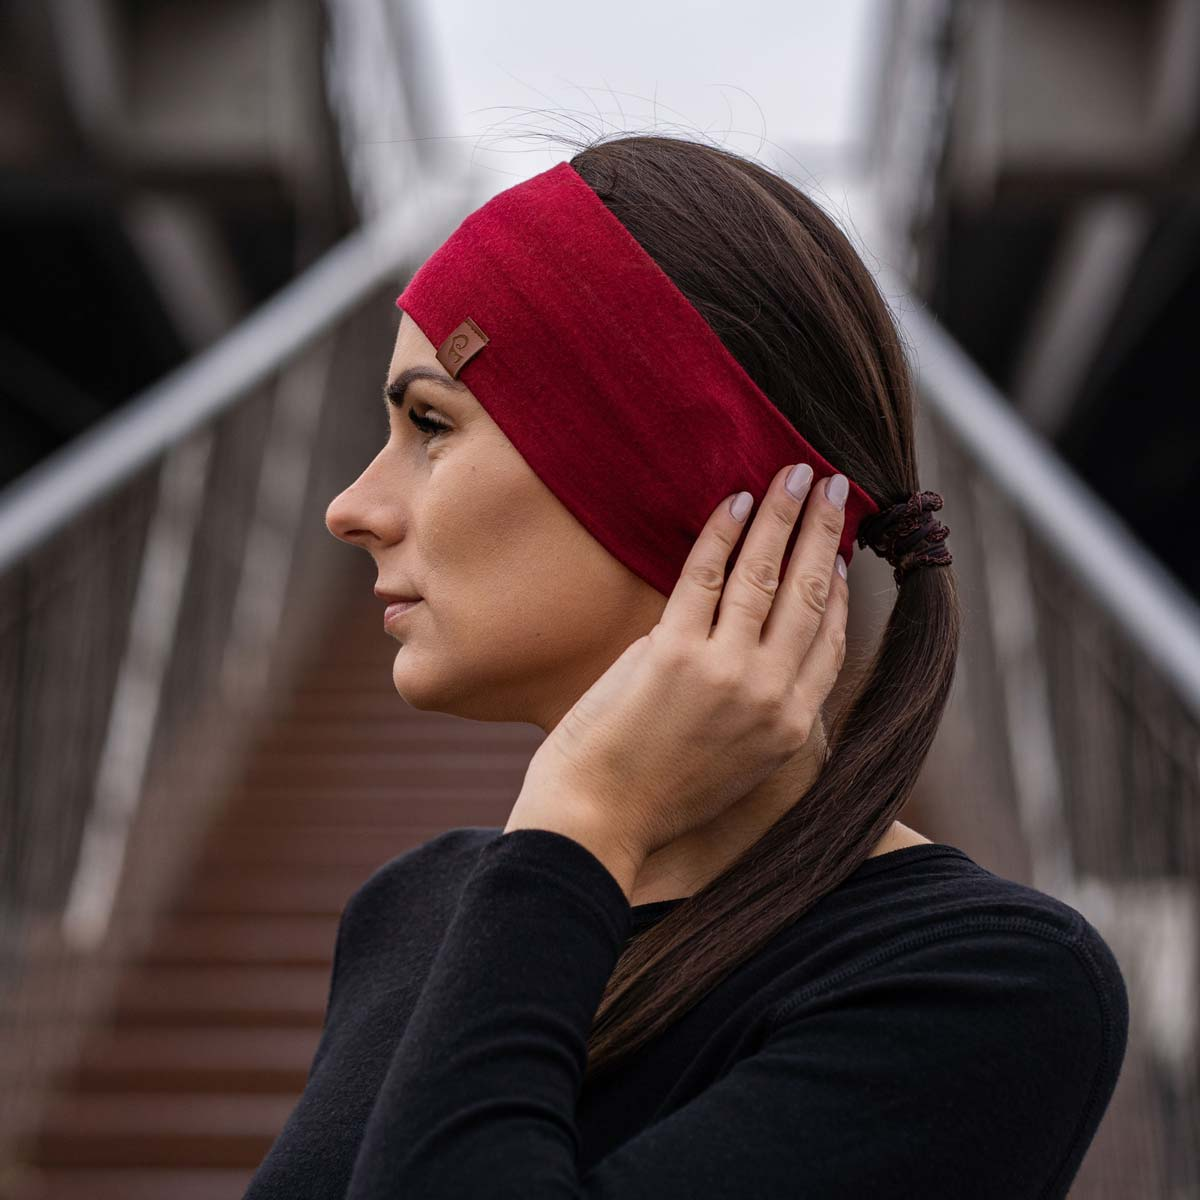 Women's Headband 160 Merino Royal Cherry